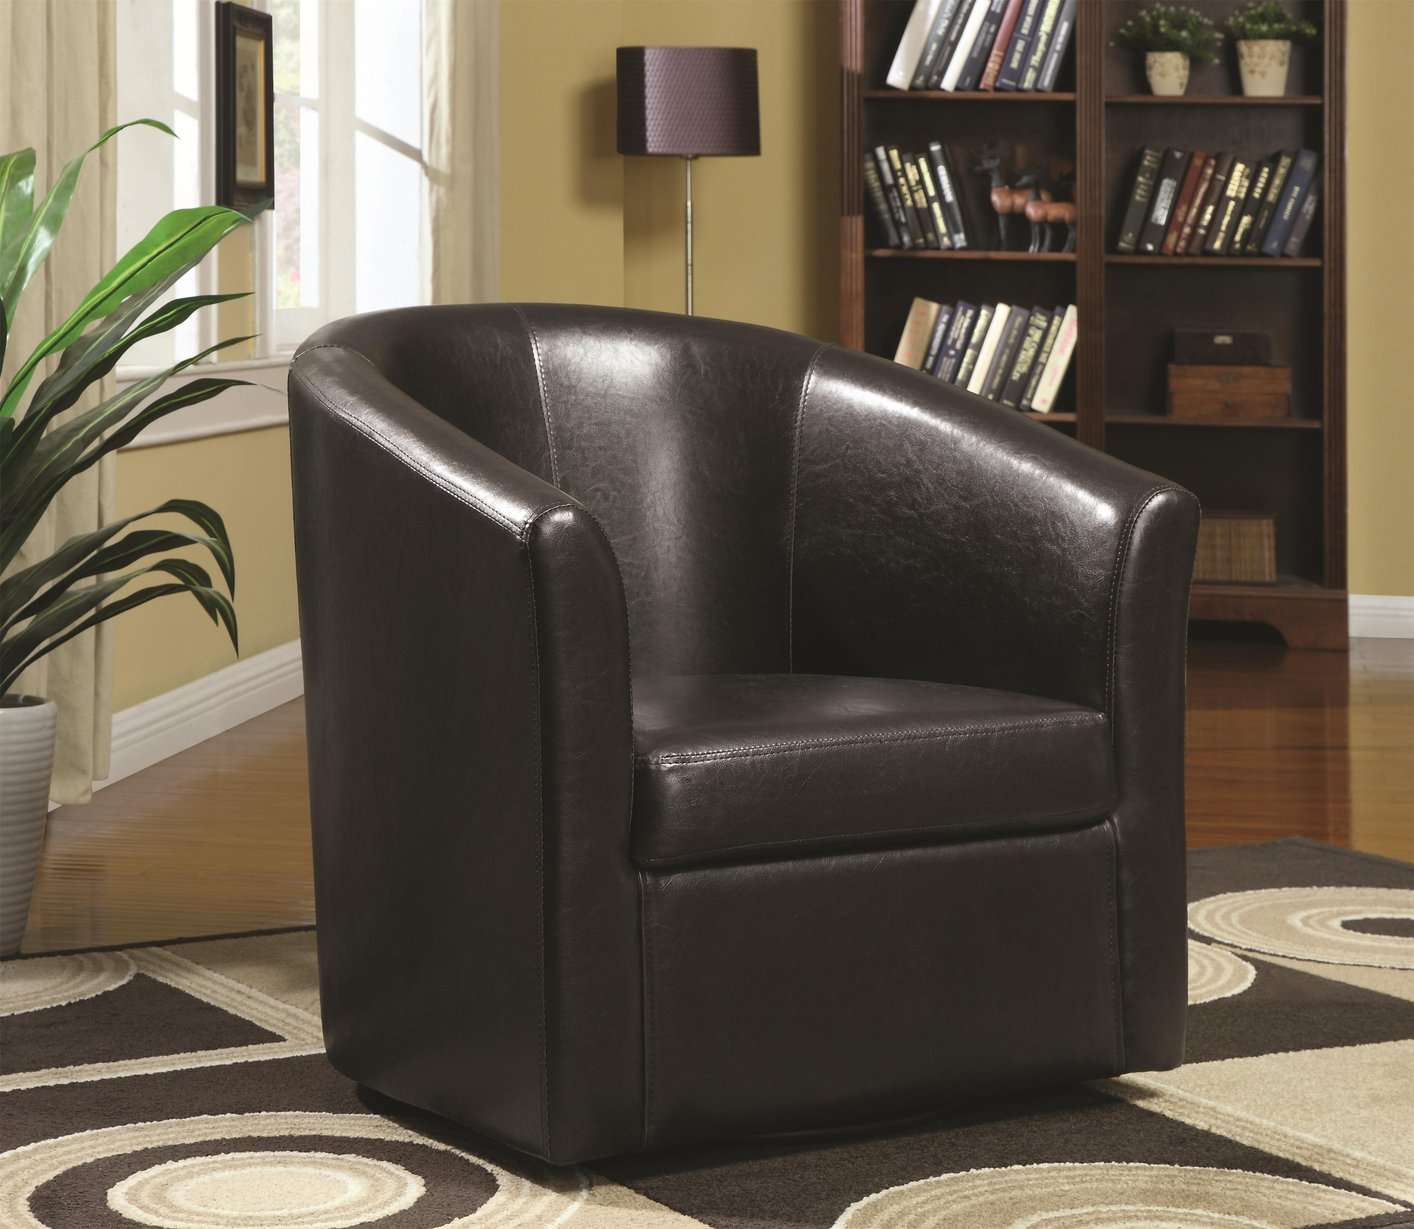 Leather Swivel Chairs For Living Room Coaster 902098 Brown Leather Swivel Chair Steal A Sofa Furniture